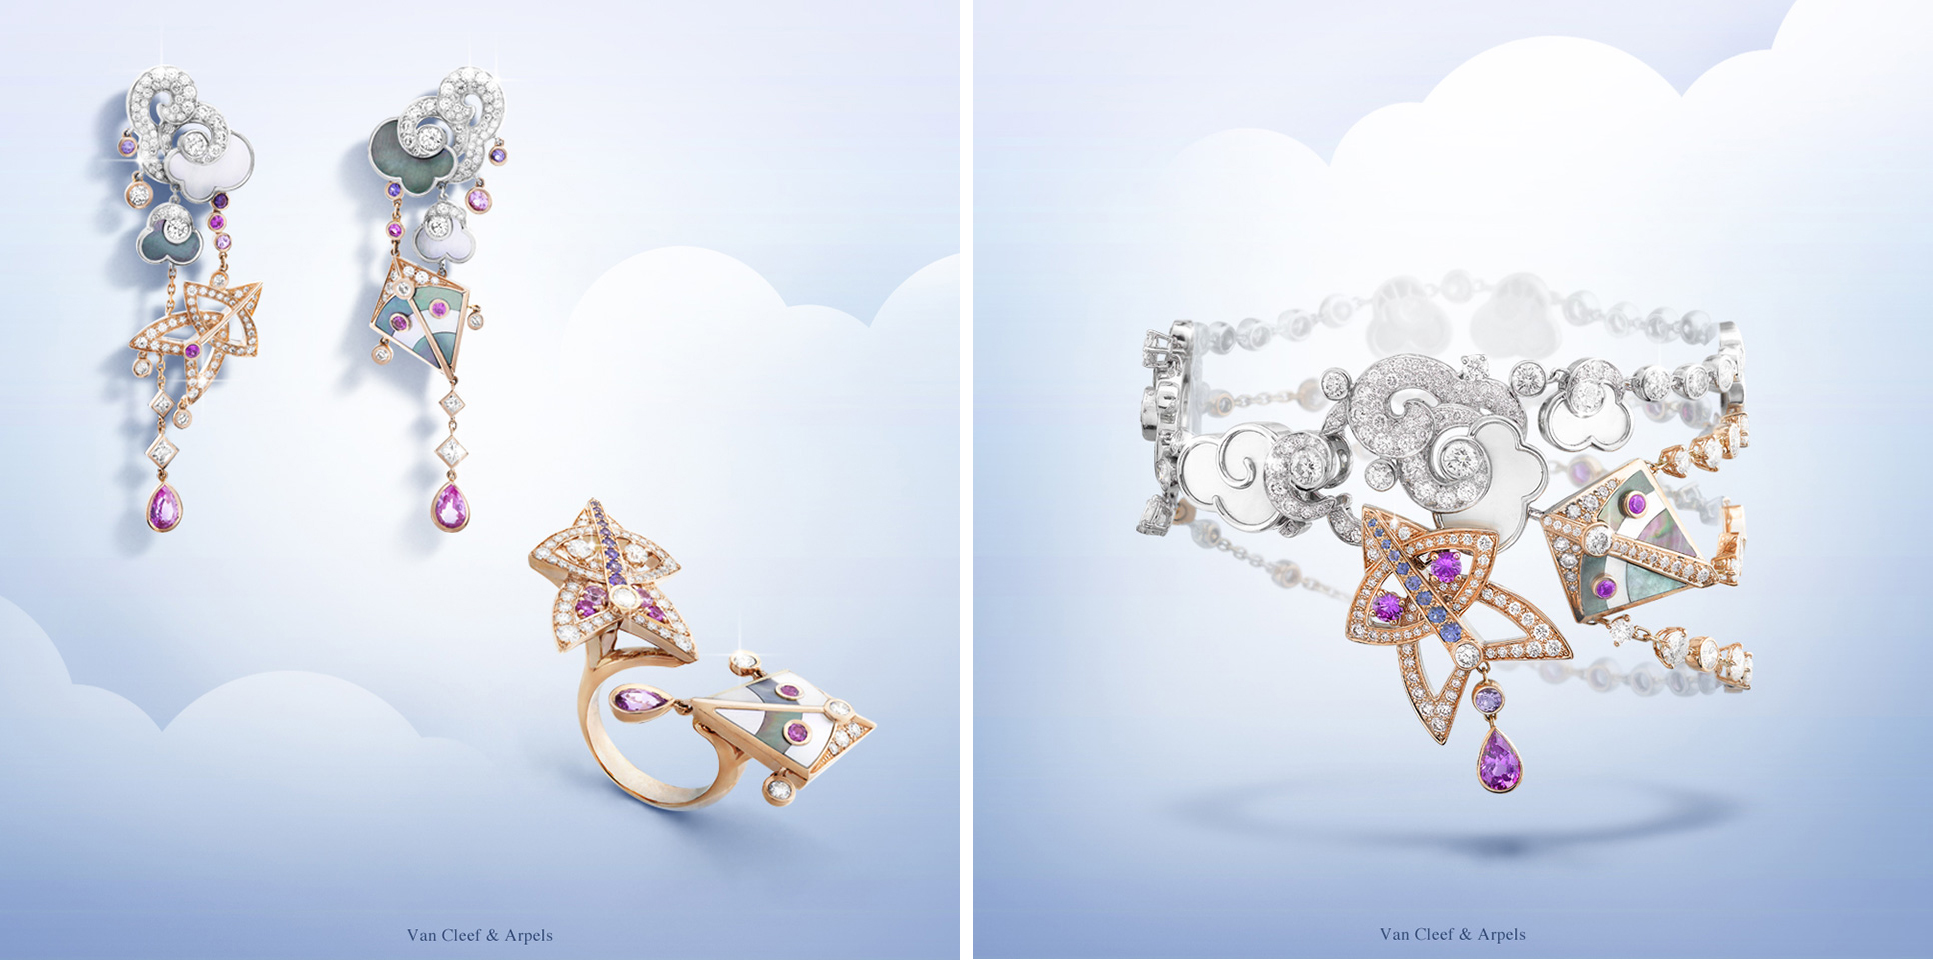 Cerfs-Volants collection by Van Cleef&Arpels